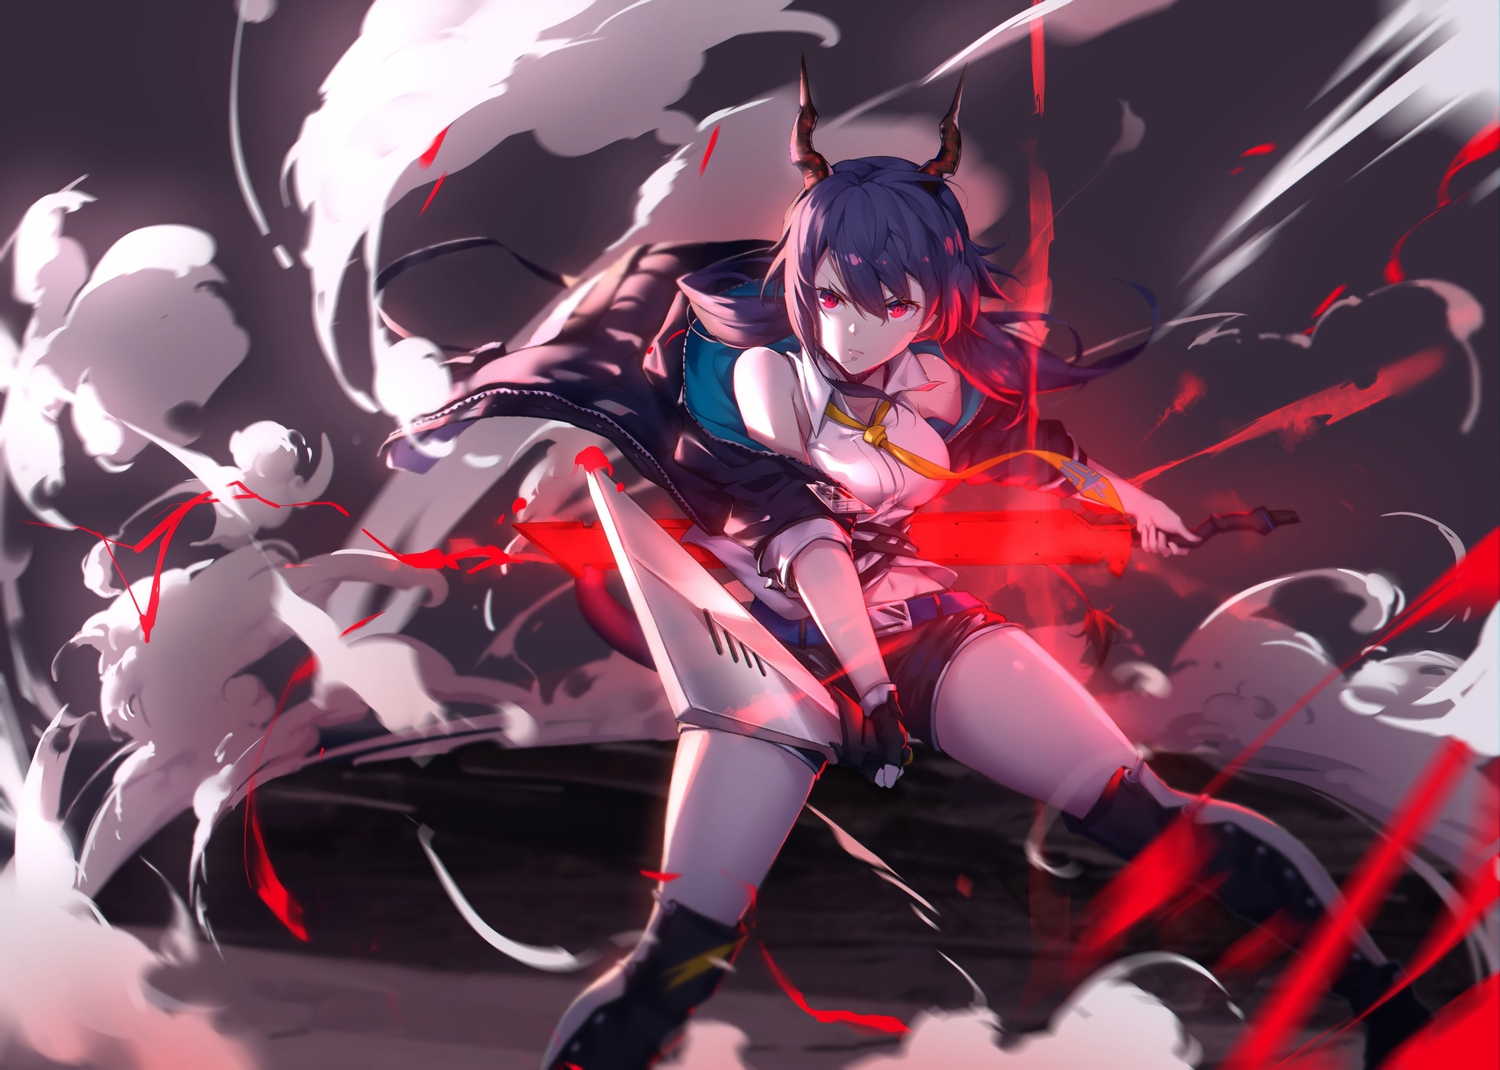 arknights blue_hair boots ch'en_(arknights) horns long_hair red_eyes shorts sword tail twintails weapon yumuto